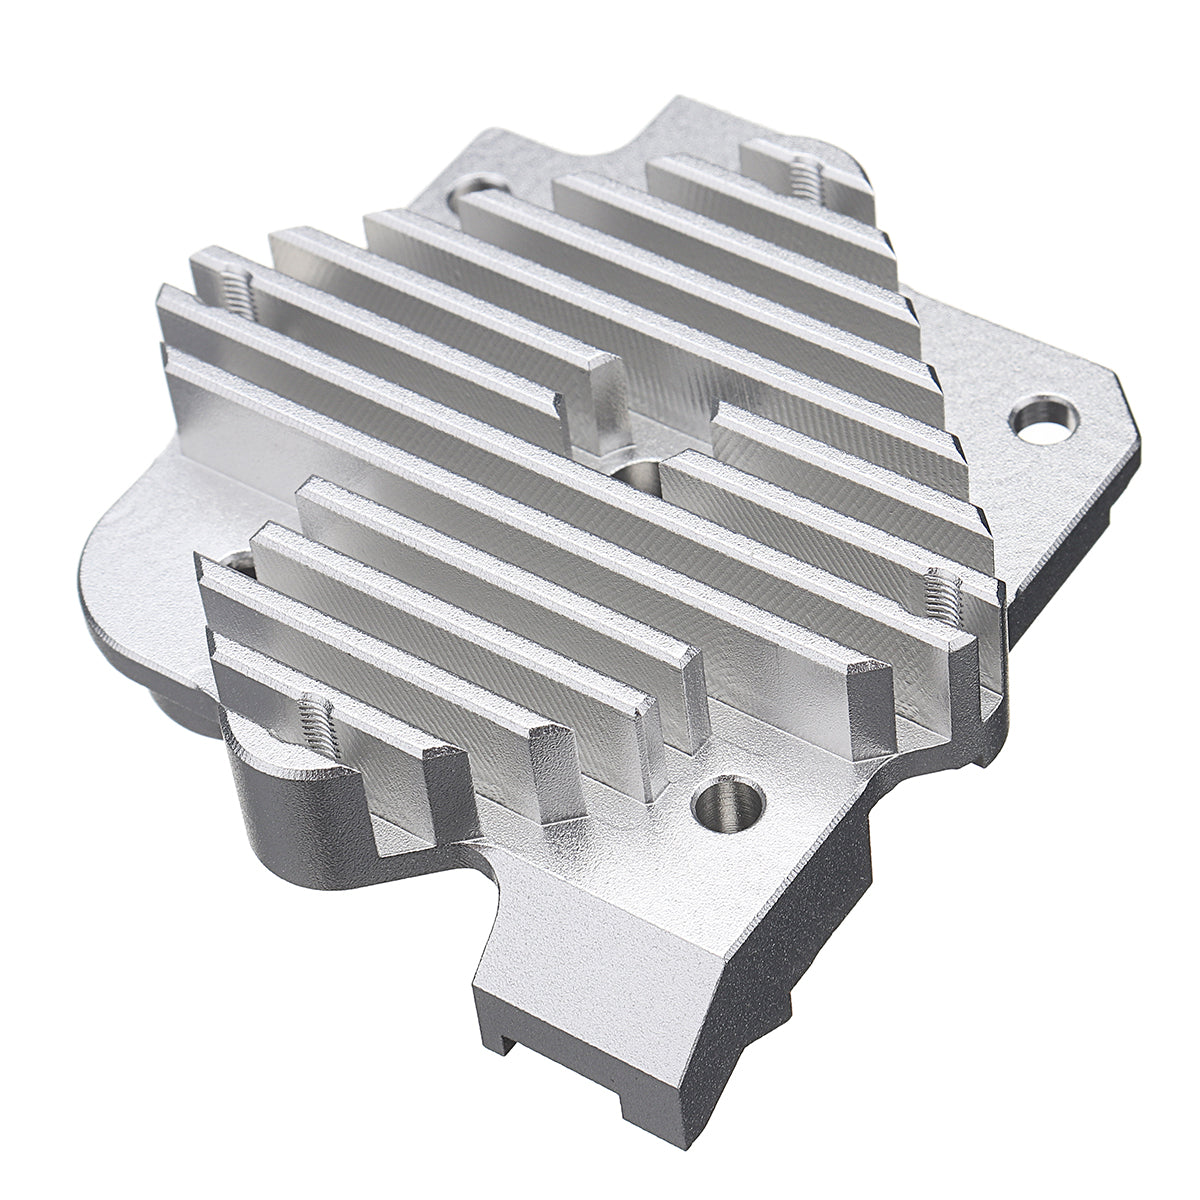 1.75mm/3.0mm Aluminum Alloy Titan Aero Heat Sink for 3D Printer Titan Extruder V6 Hotend